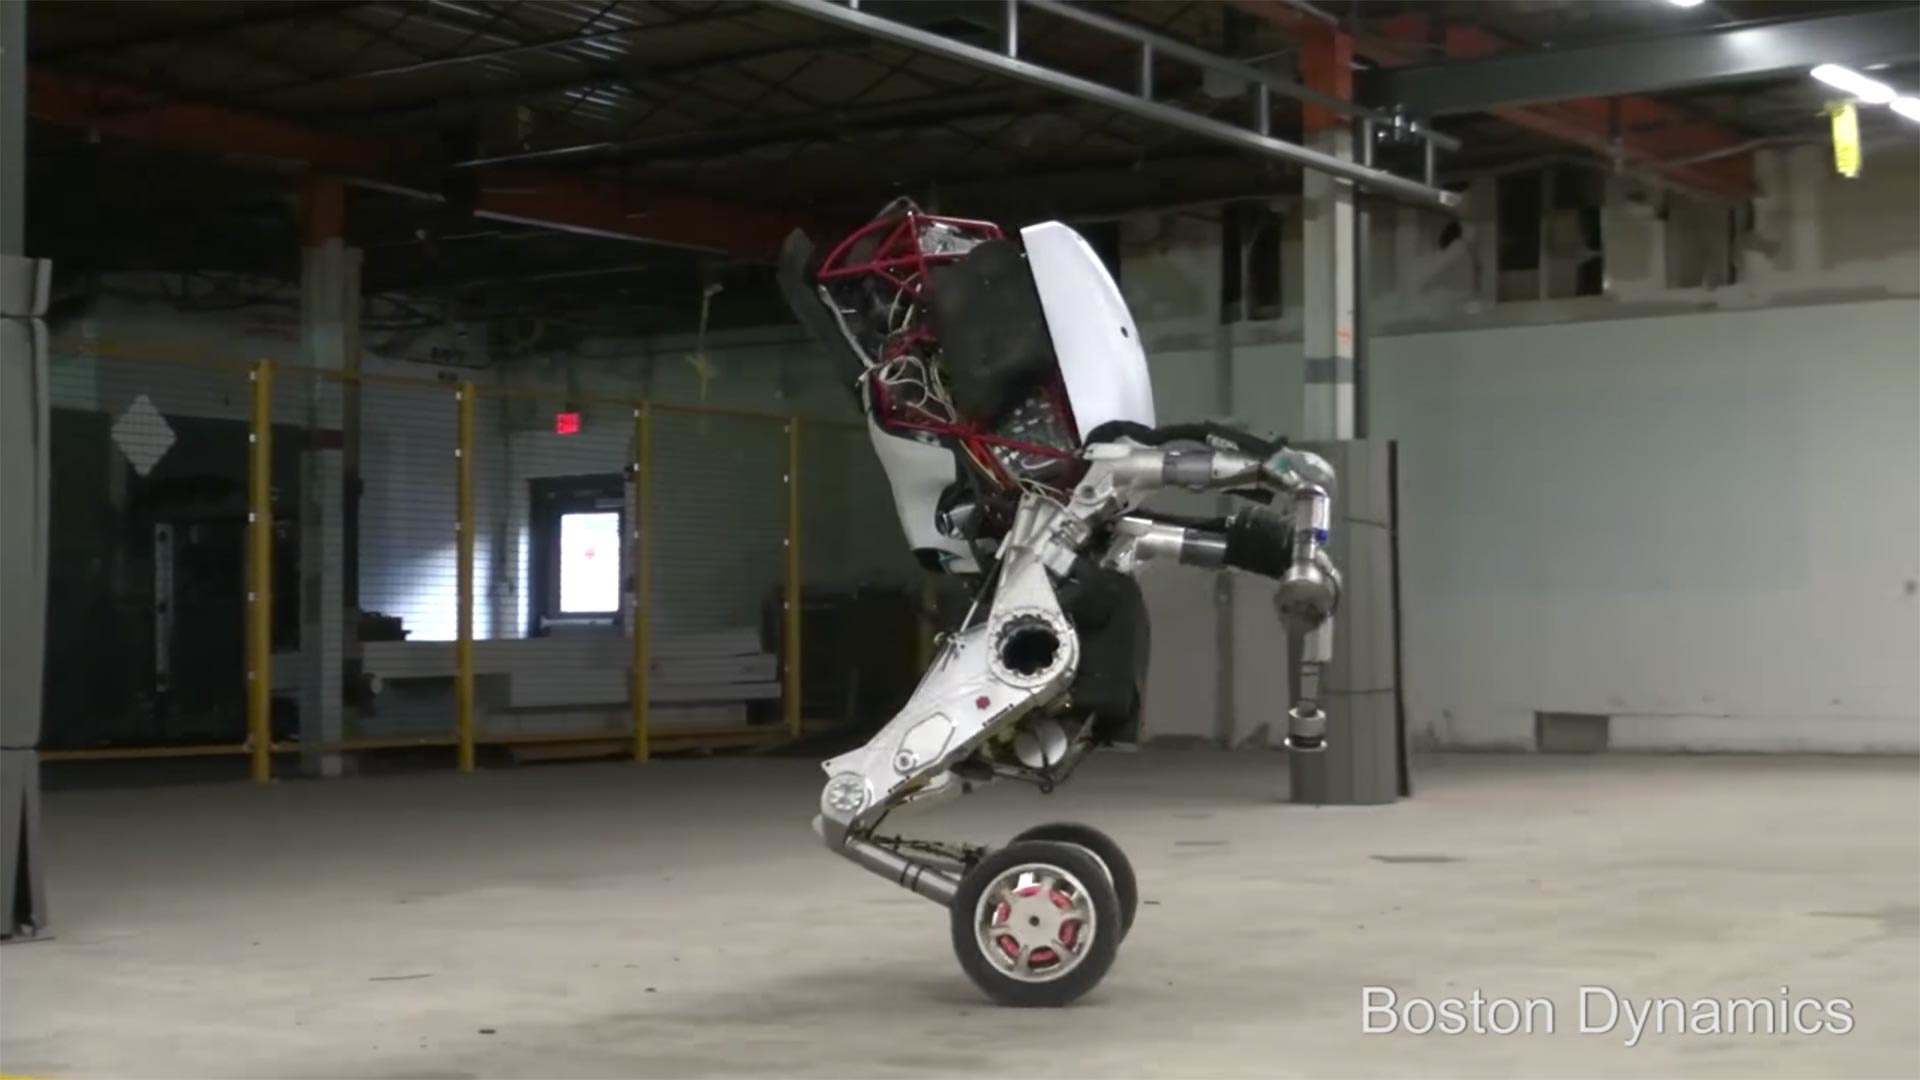 Boston Dynamics Rolling Robot Is The Envy Of All Rollerbladers